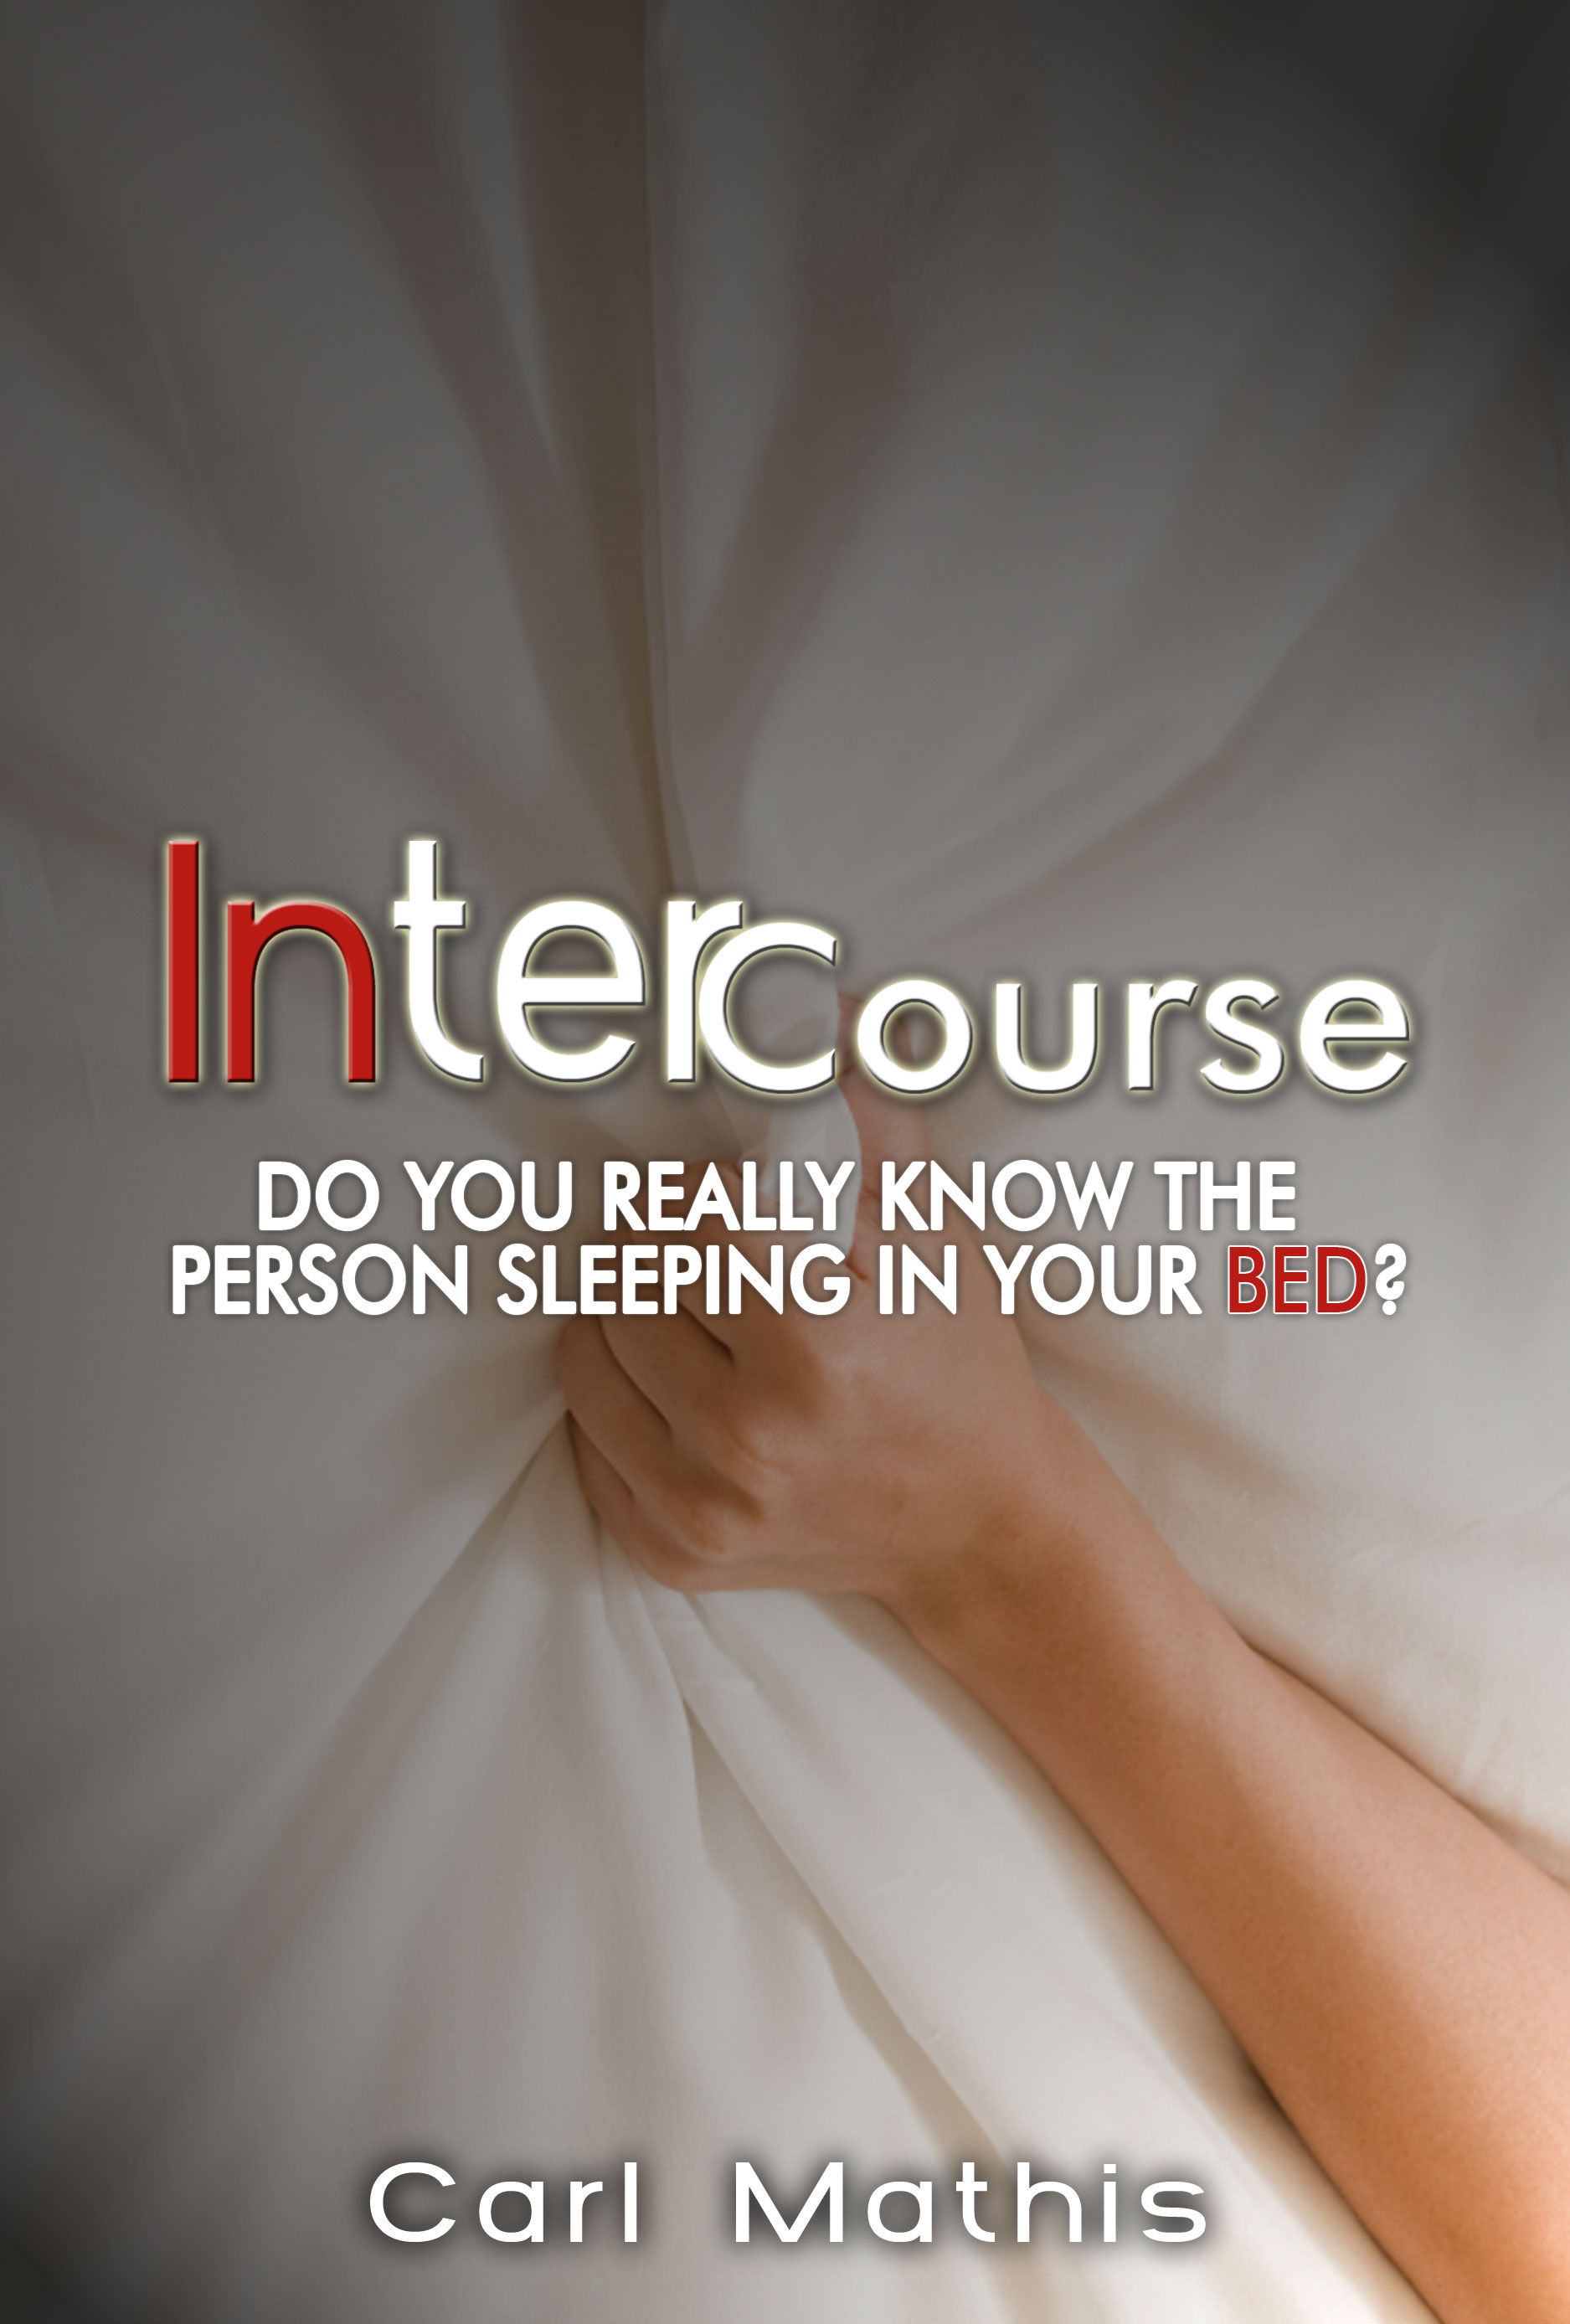 INTERCOURSE DO YOU REALY KNOW THE PERSON SLEEPING IN YOUR BED?